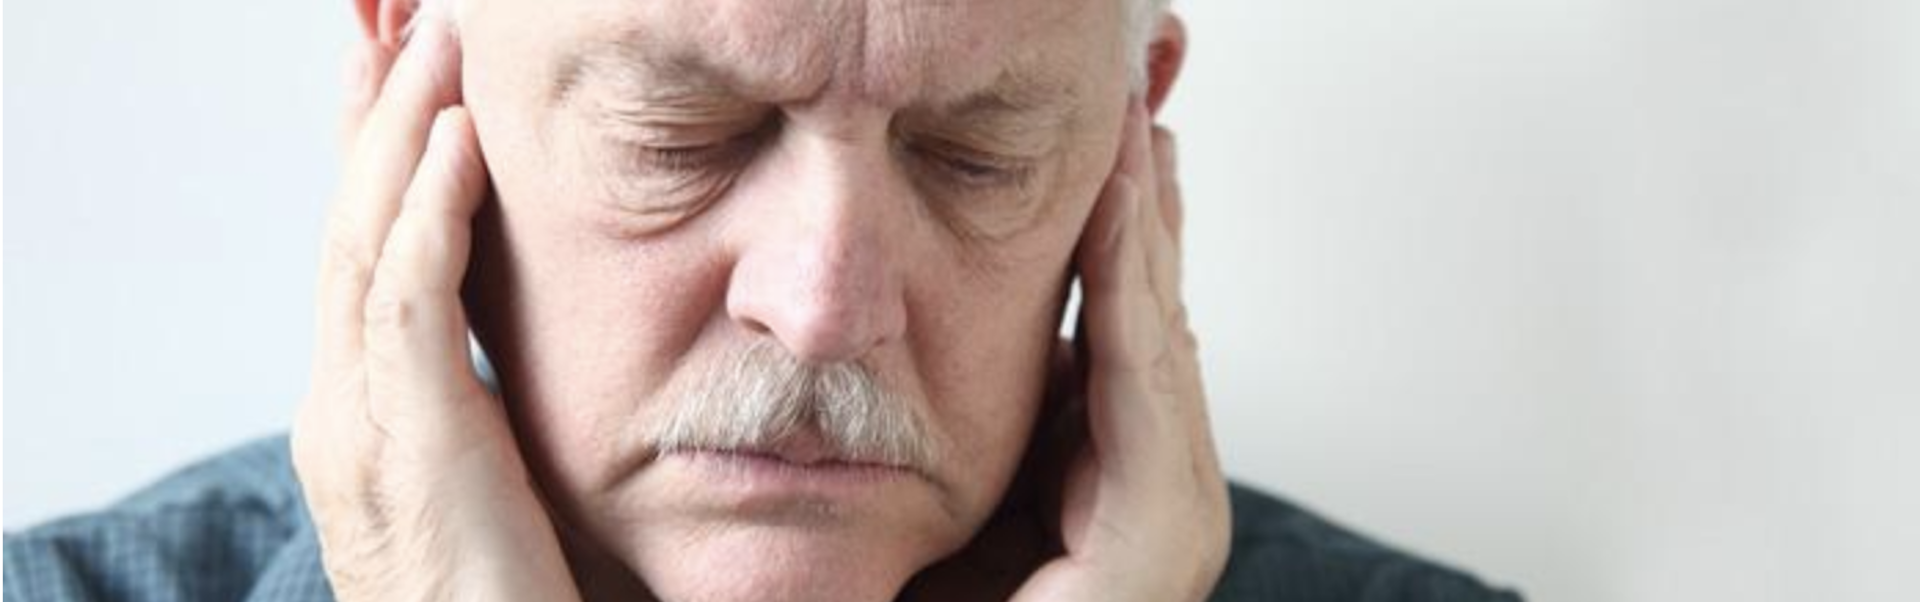 Tinnitus hearing loss